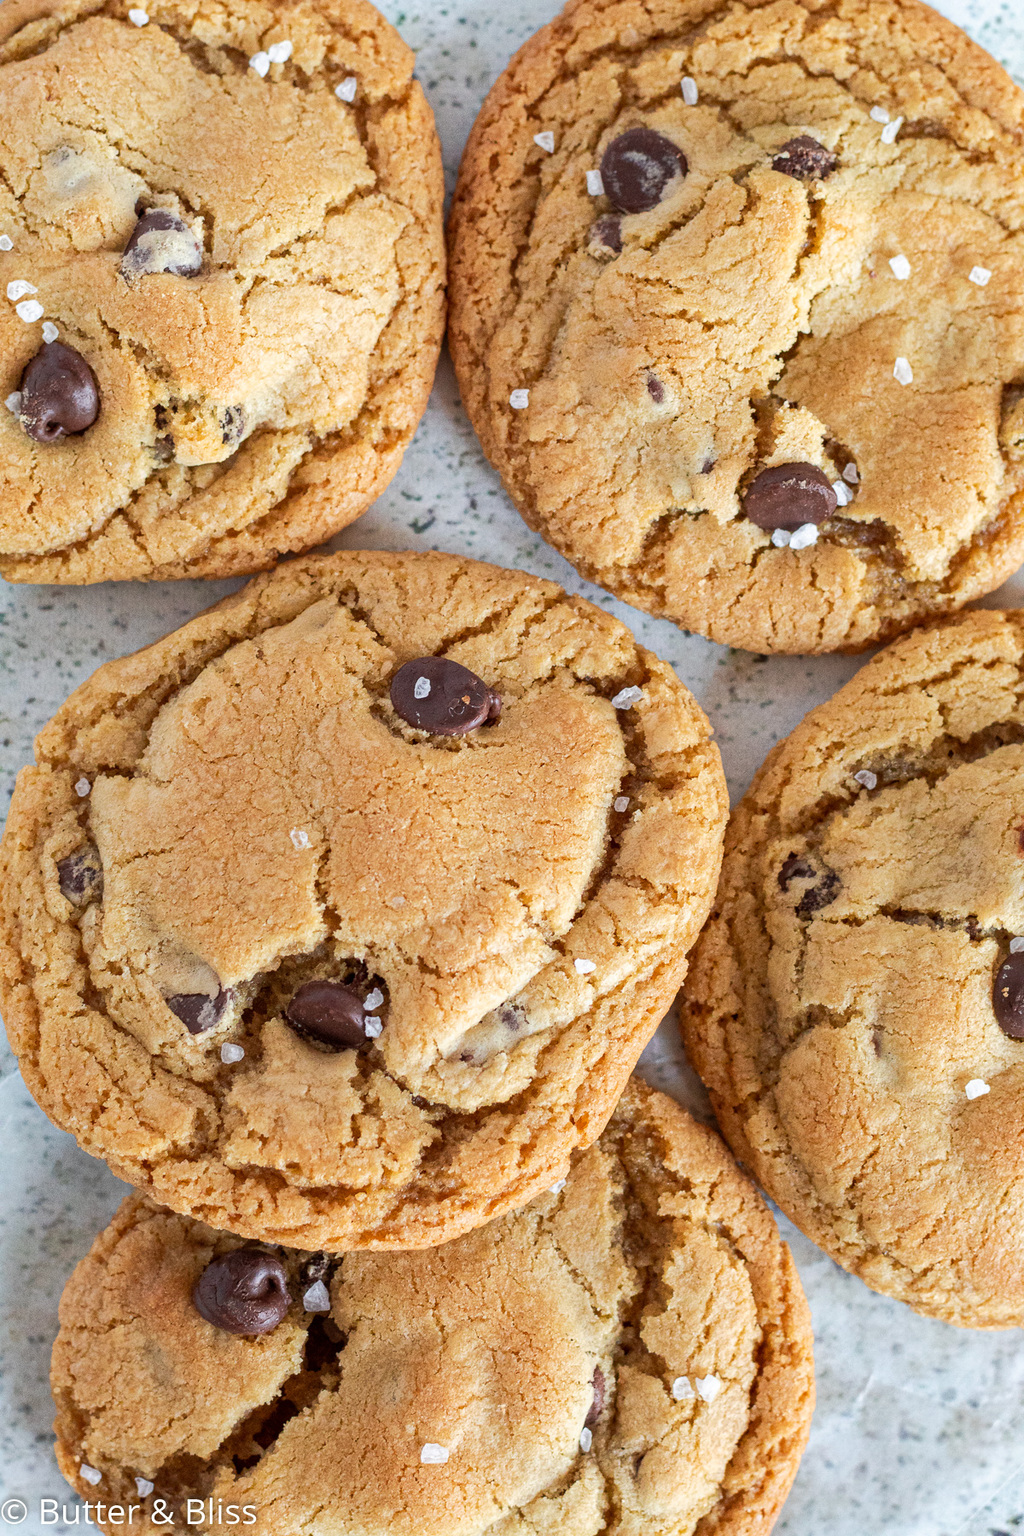 A tray full of chocolate chip cookies